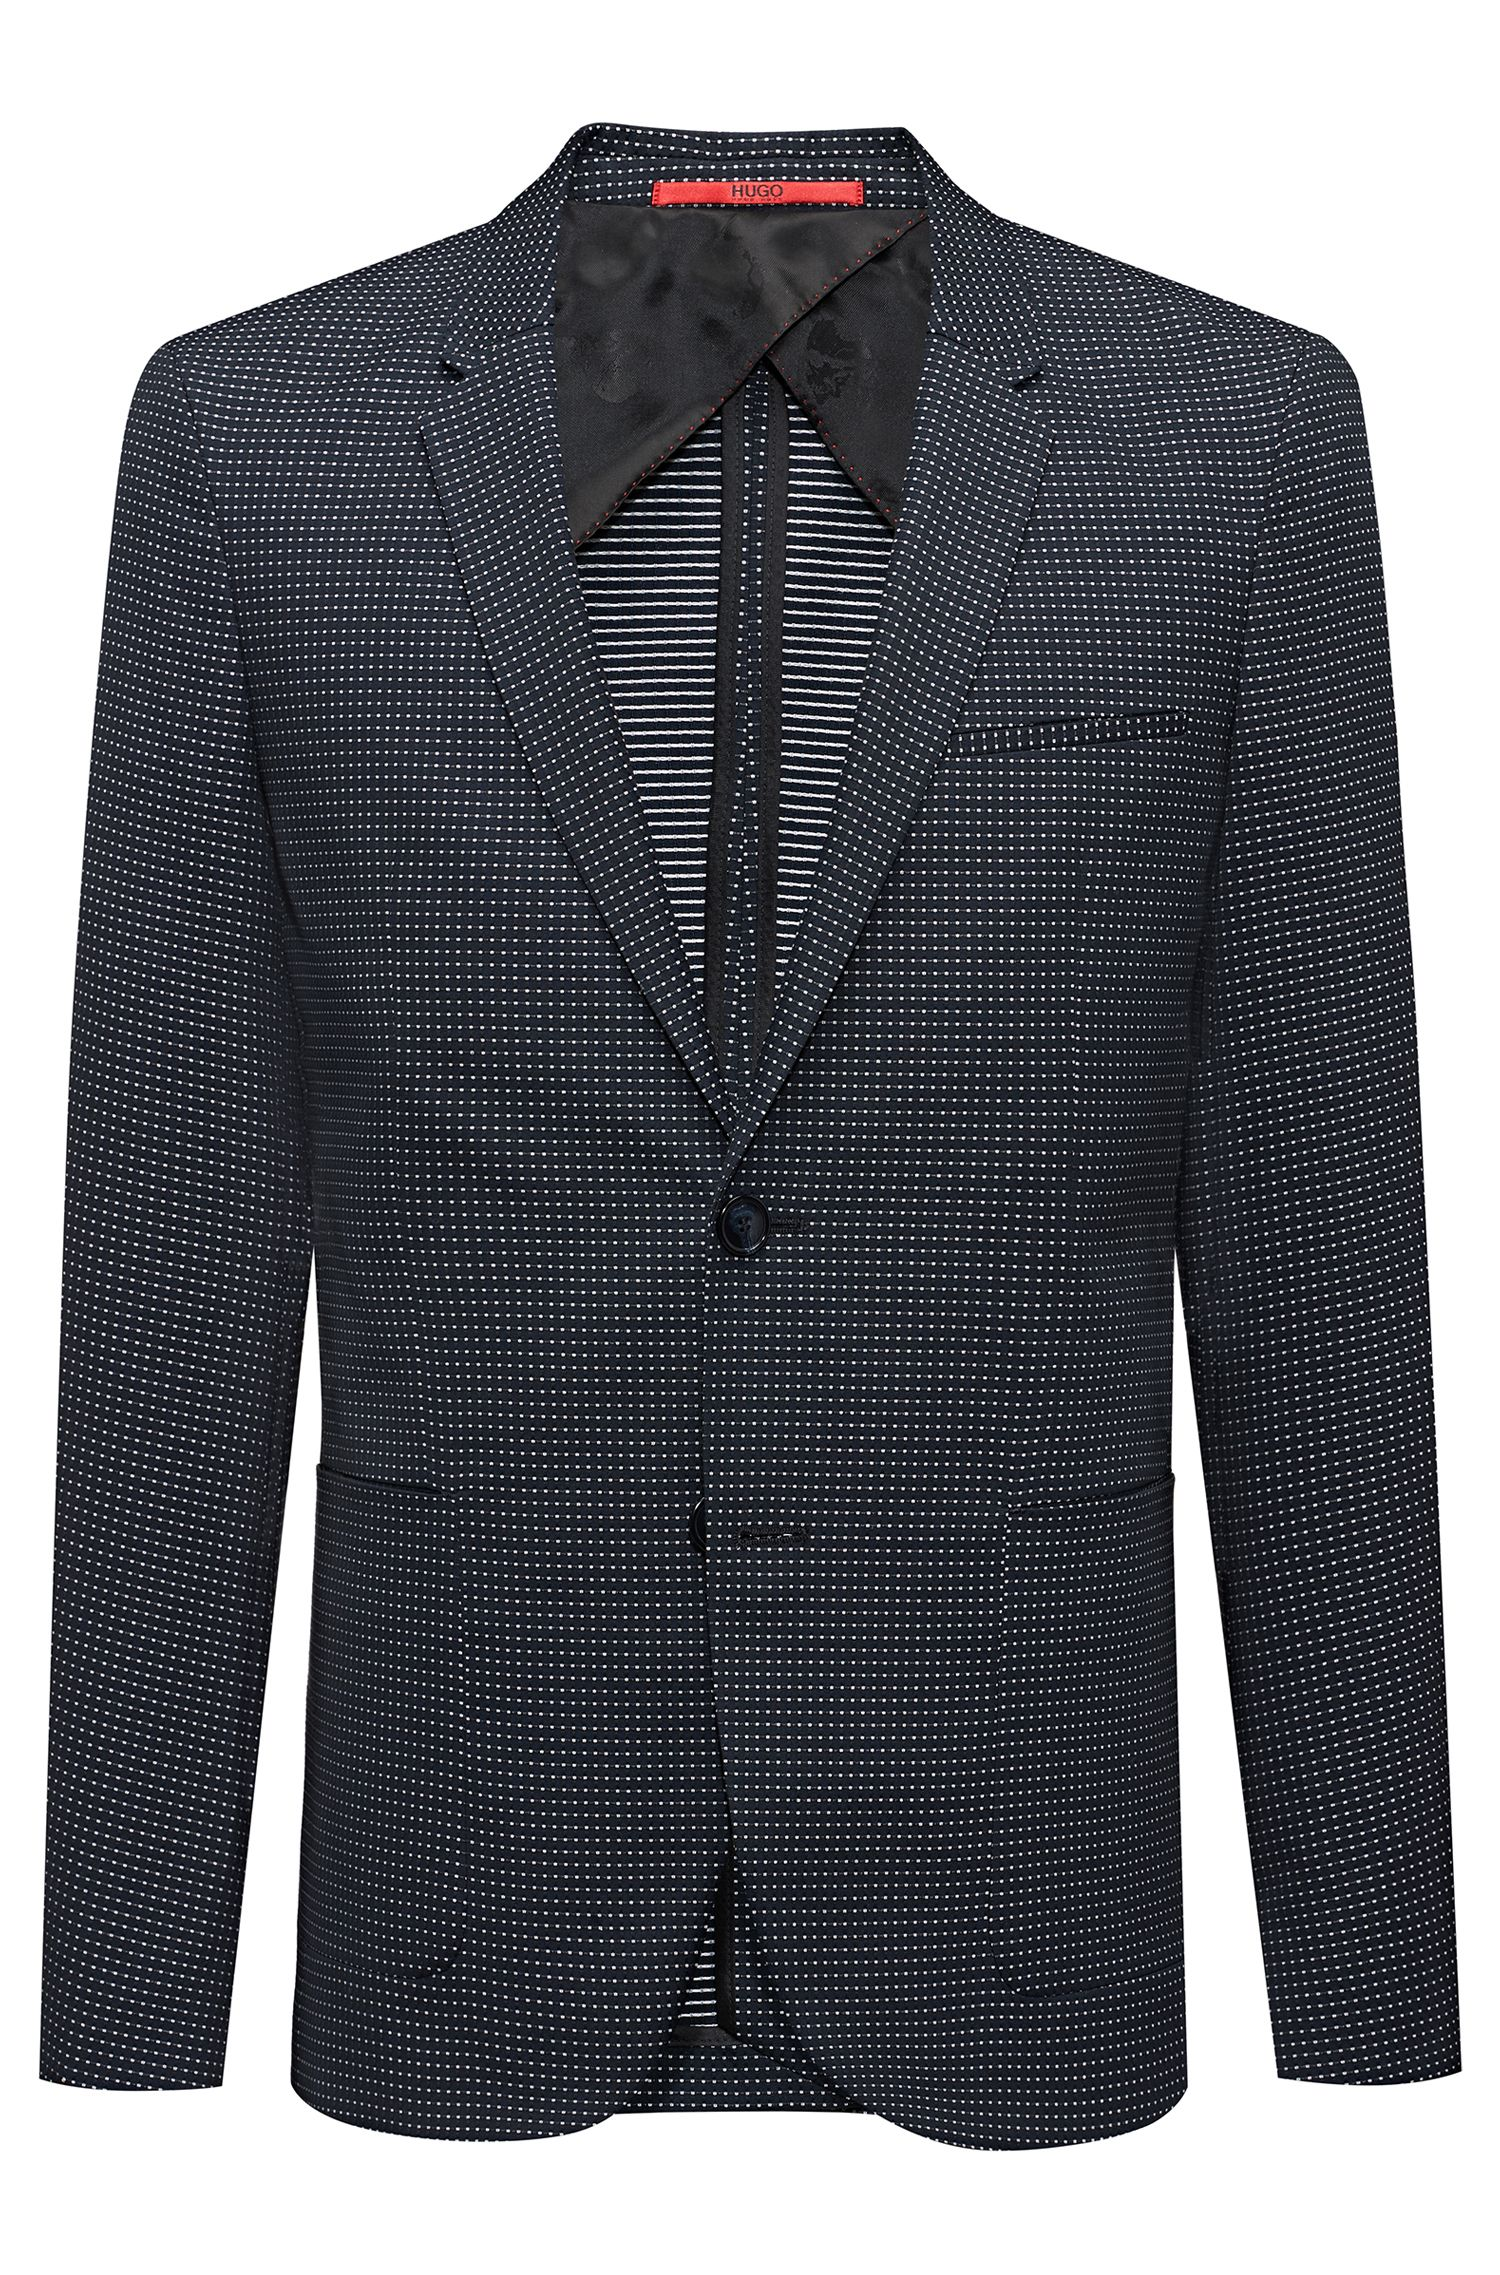 Extra-slim-fit micro-pattern jacket in a stretch cotton blend